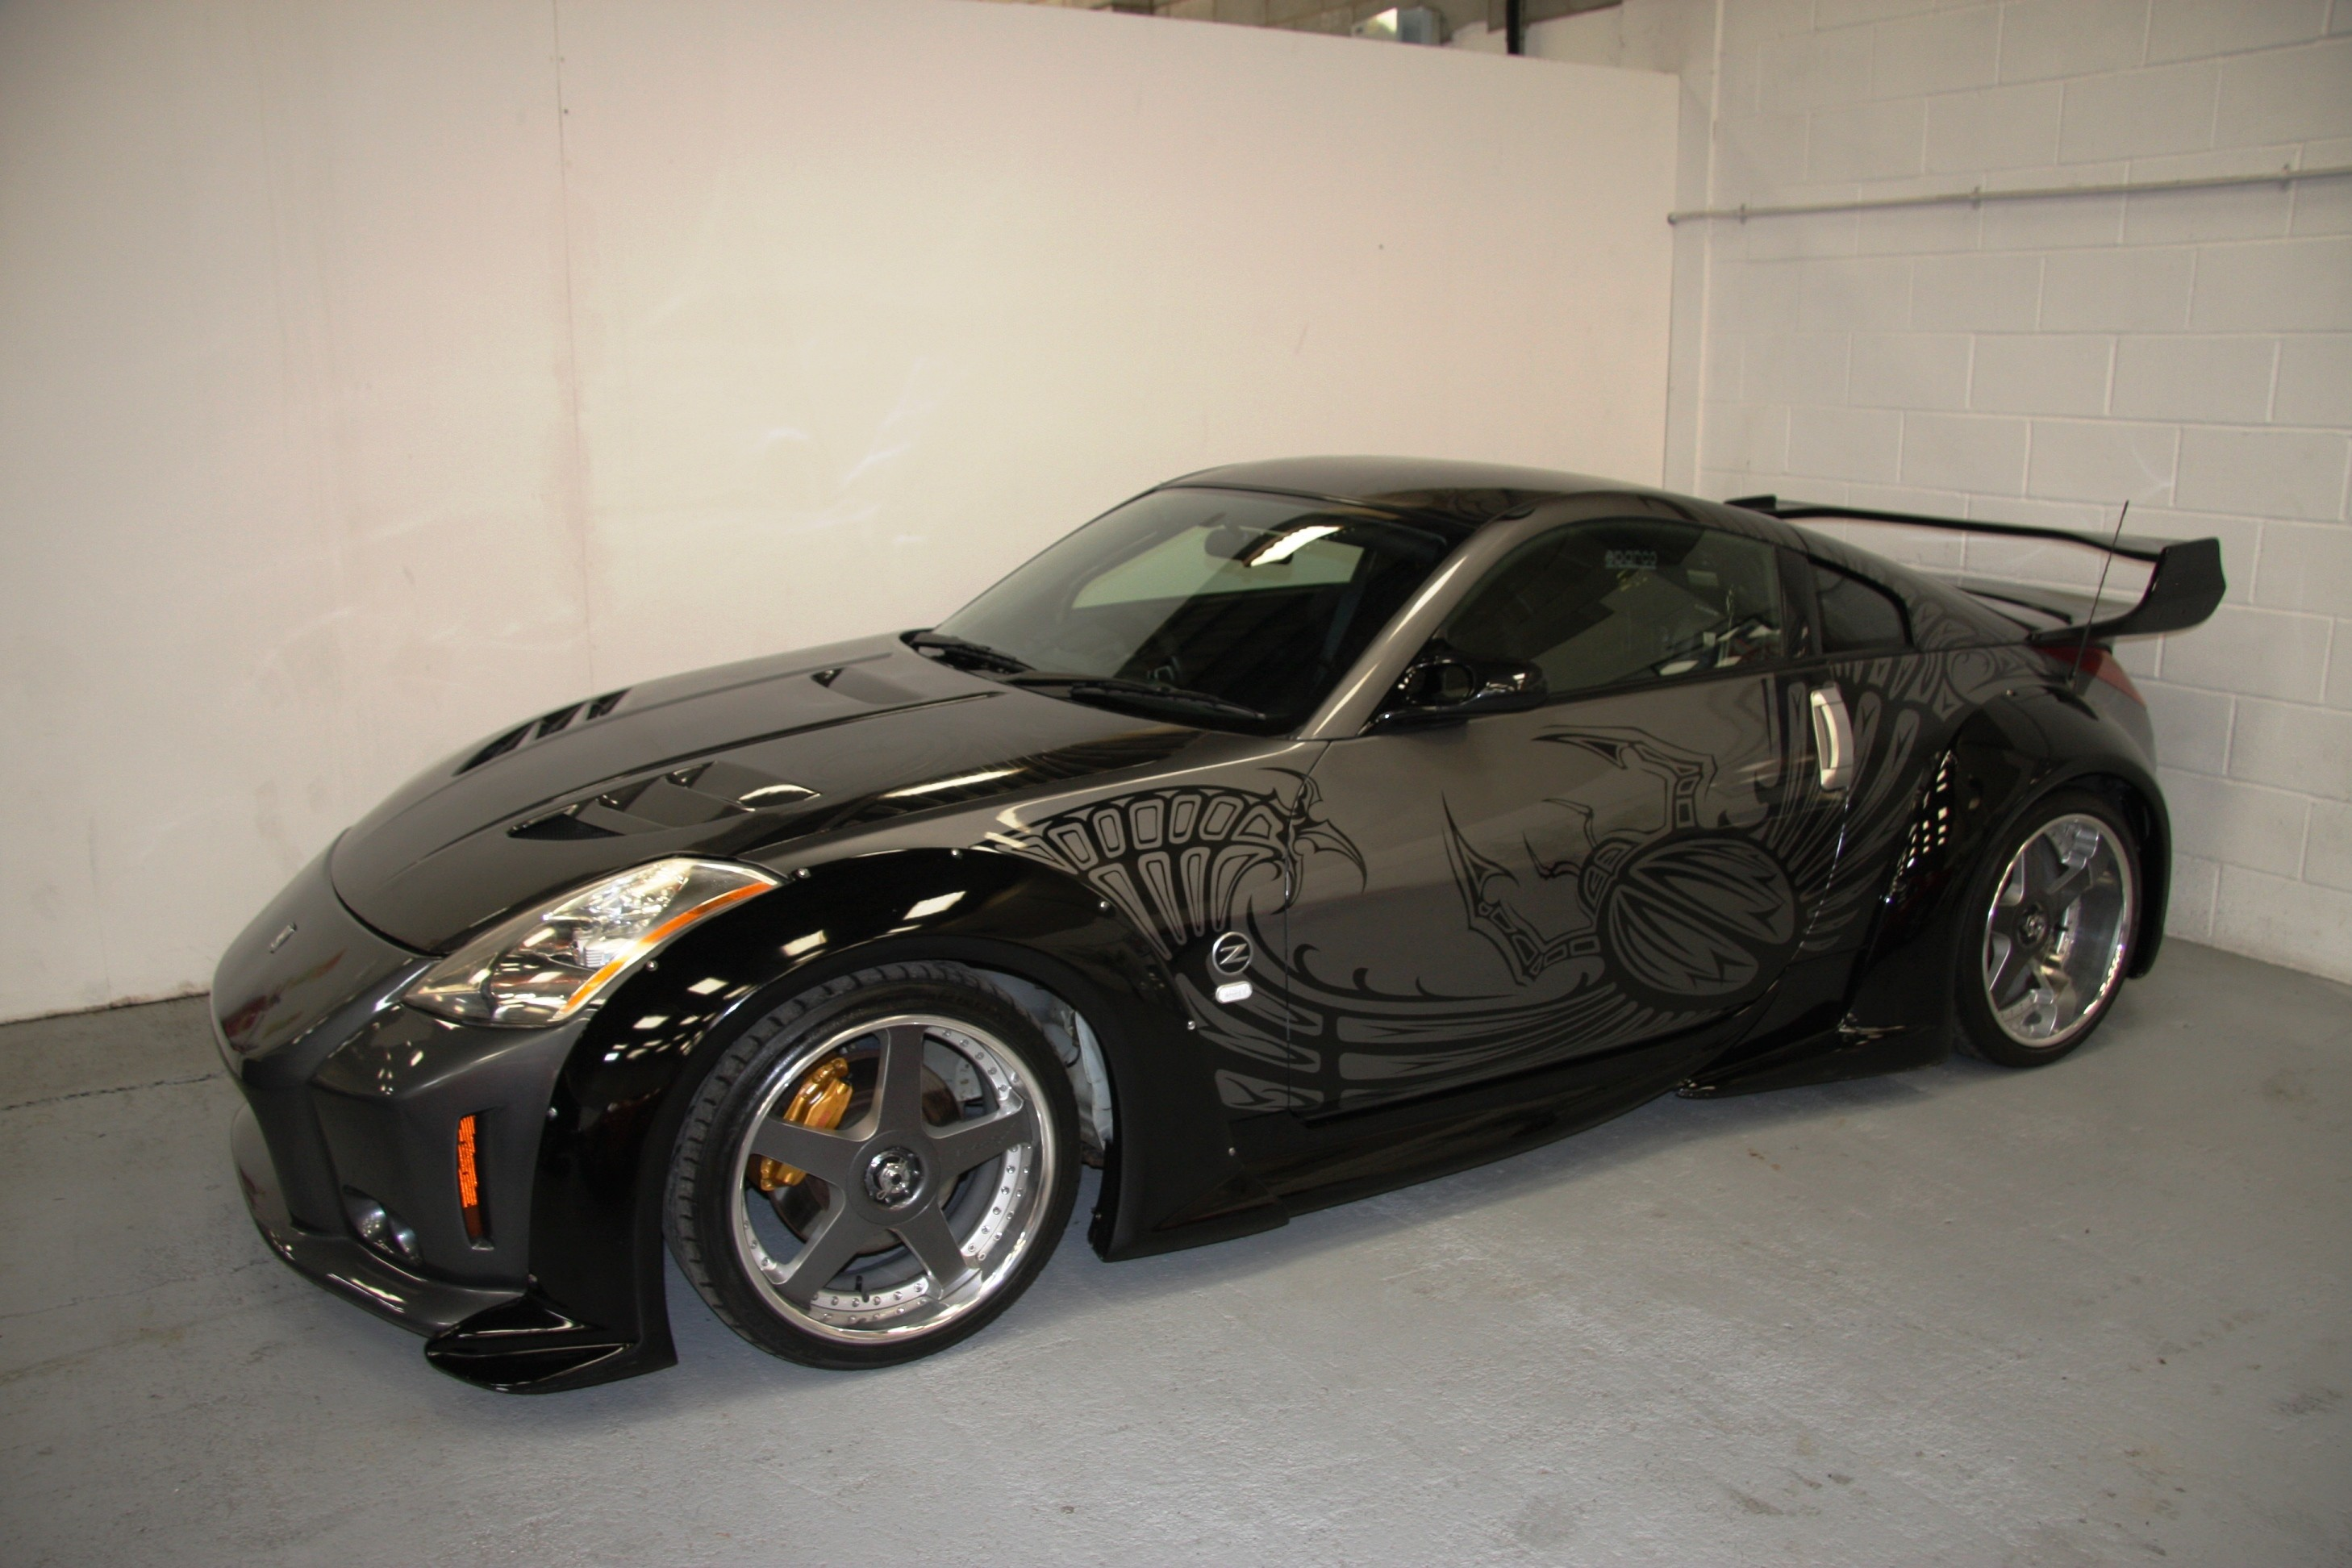 buy the tuned up 2003 nissan 350z takashi's friend drove in tokyo